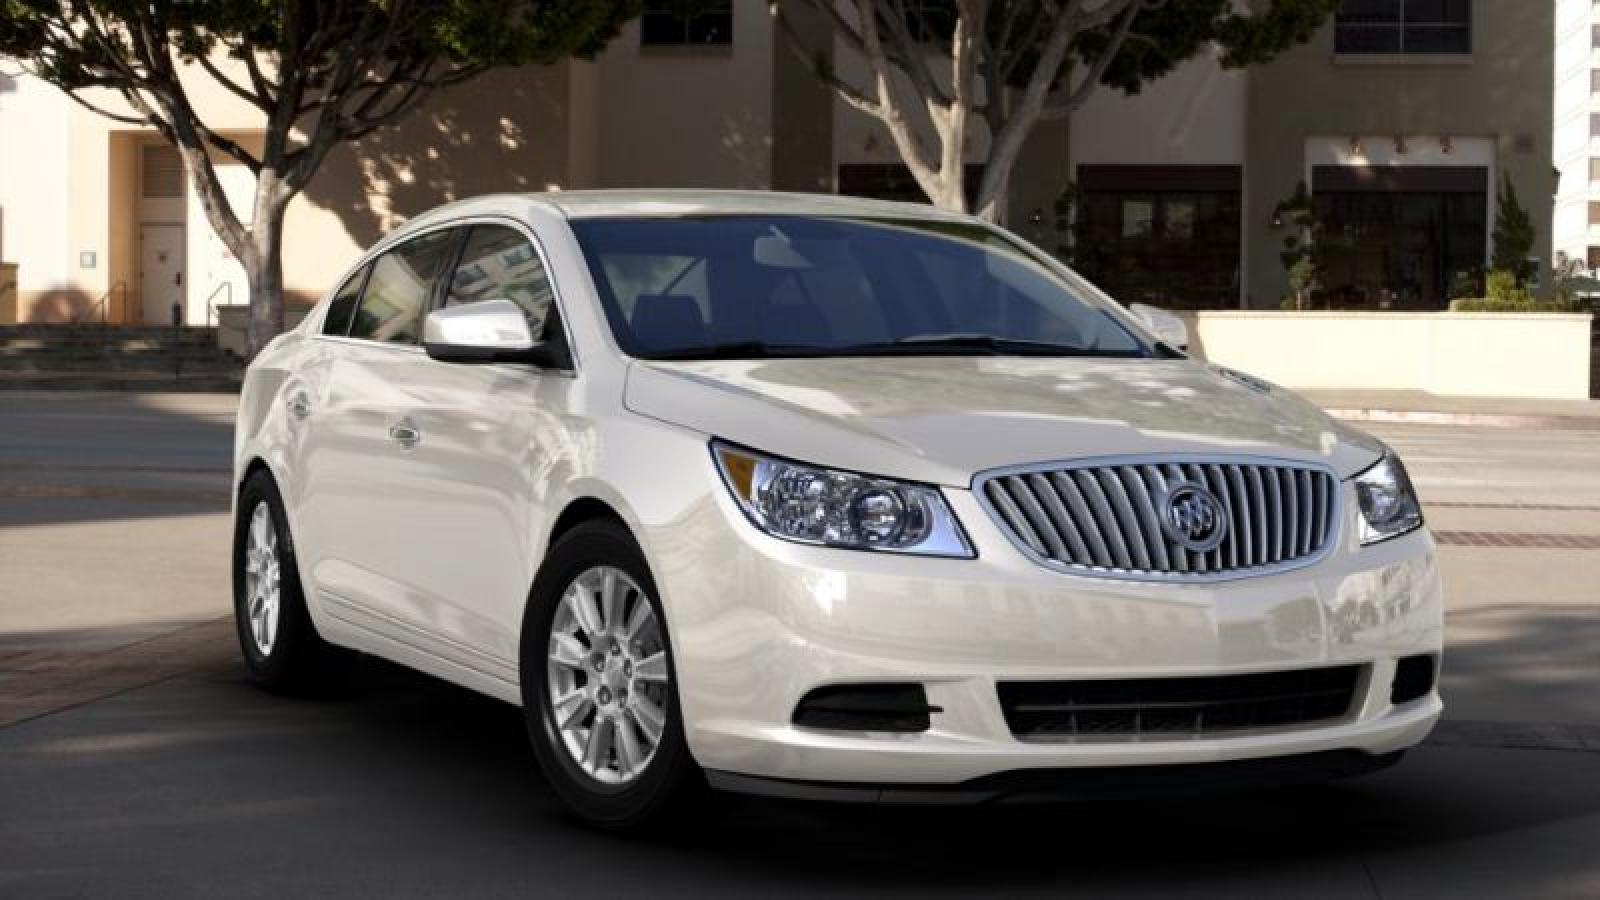 2013 buick lacrosse information and photos zombiedrive. Black Bedroom Furniture Sets. Home Design Ideas